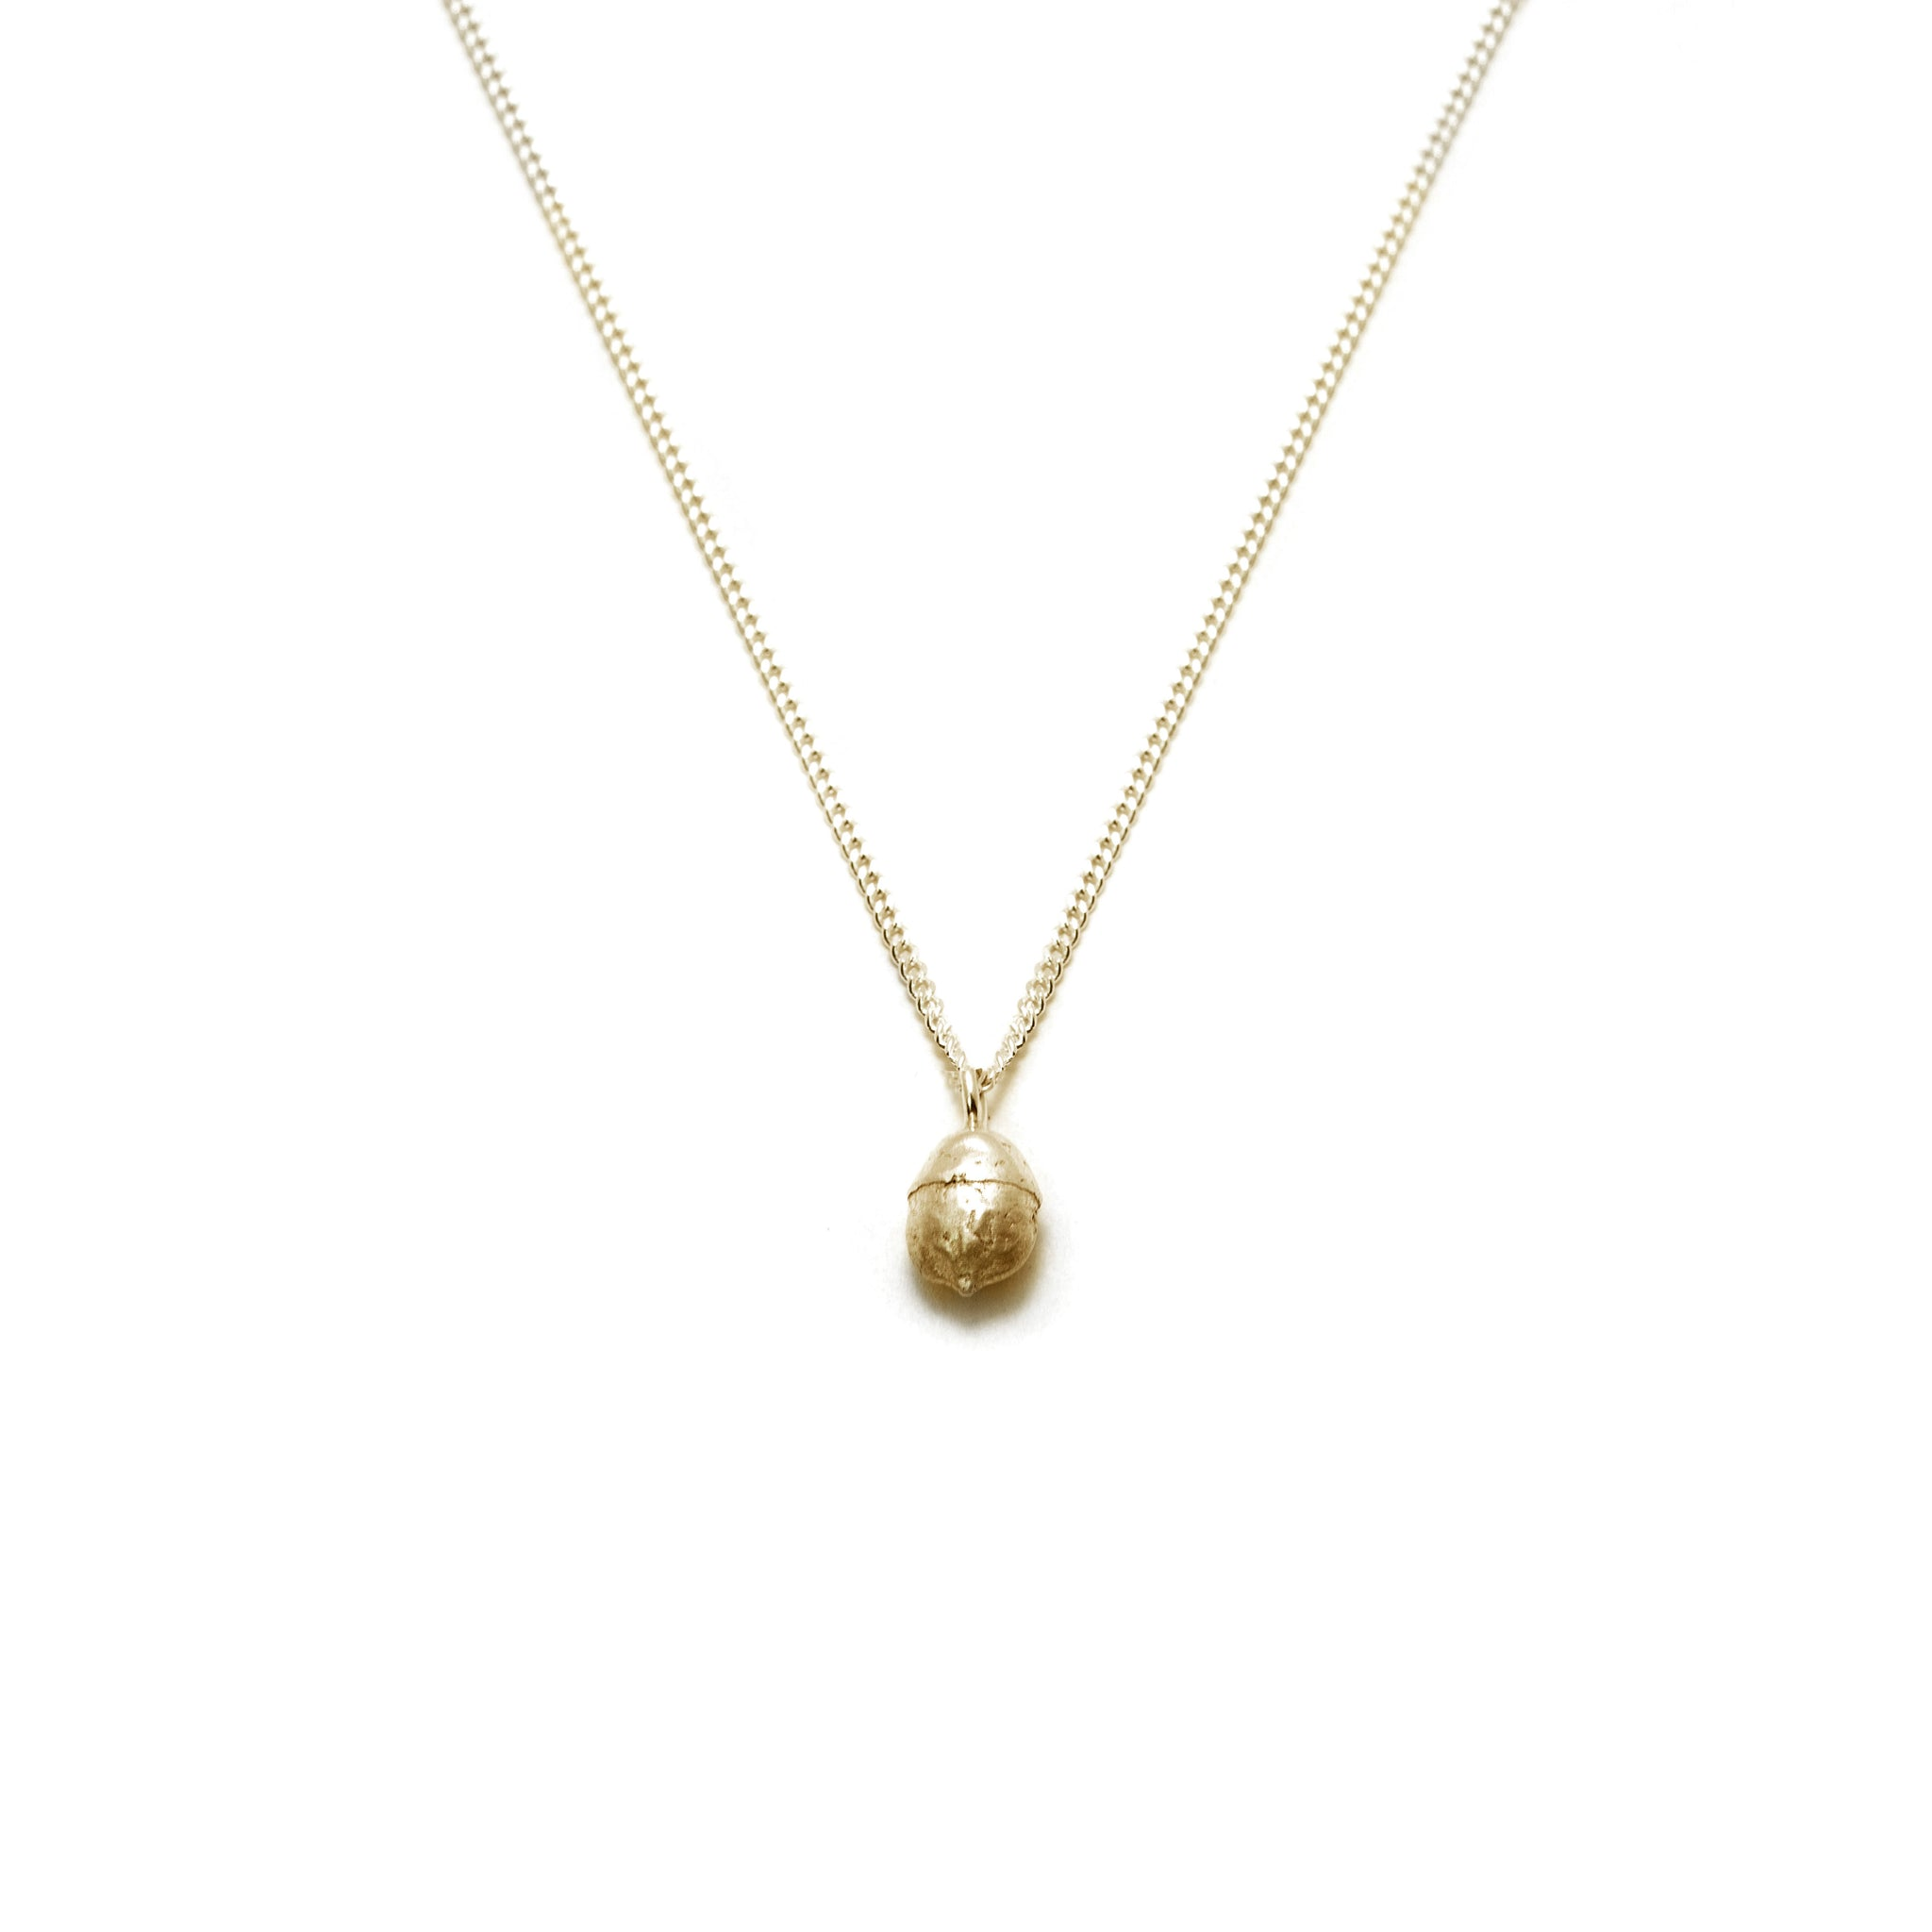 gold yew berry necklace on white background